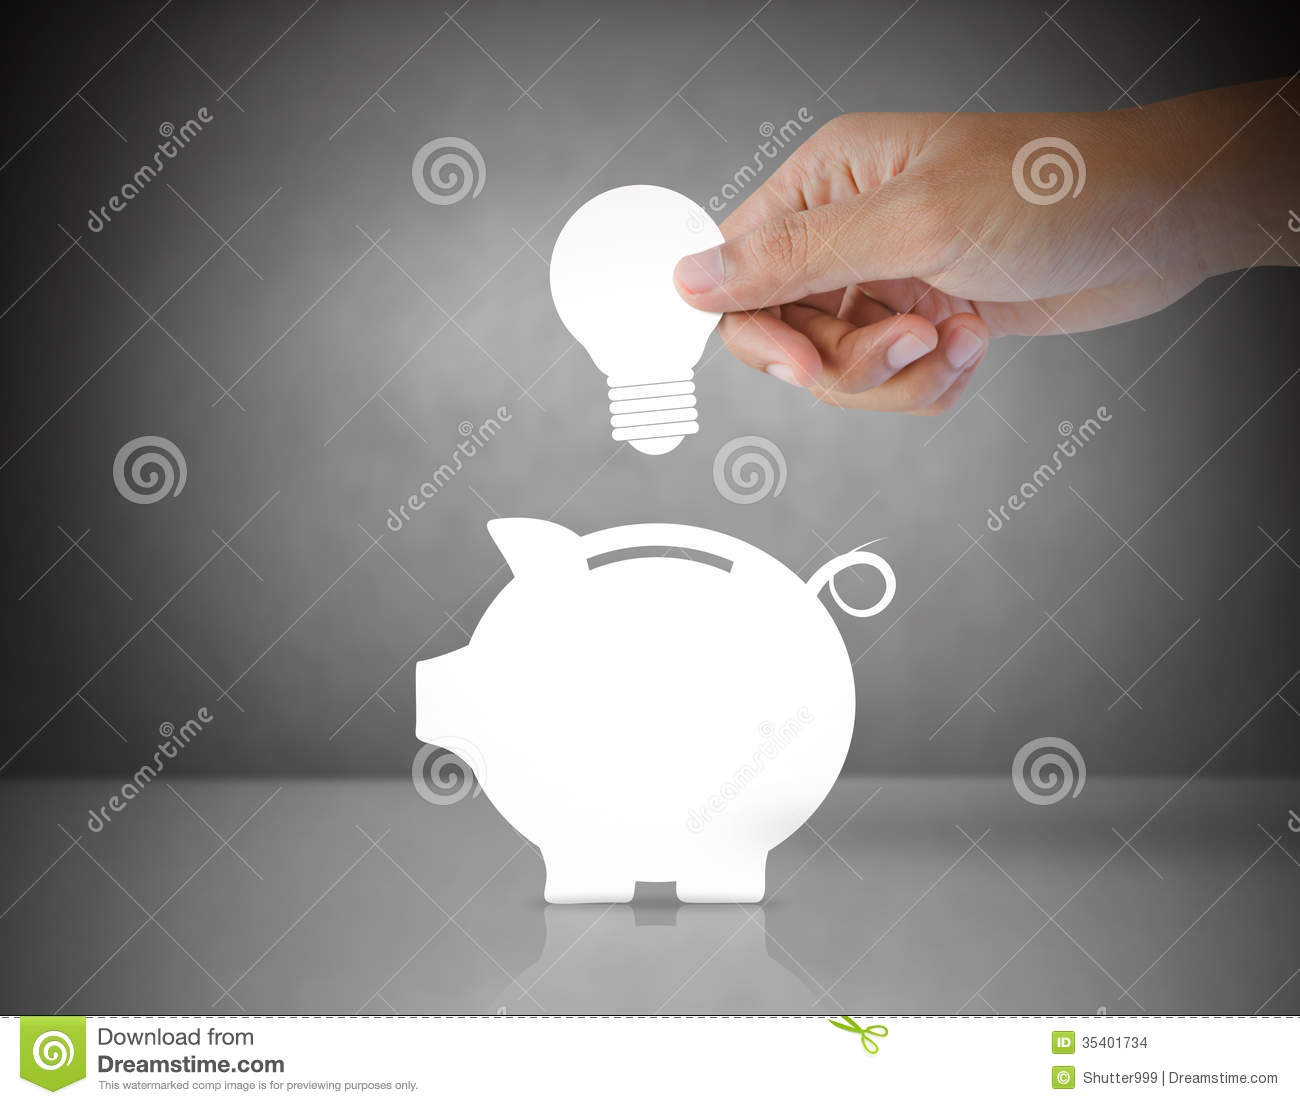 Piggy Bank Idea Male Hand Putting Light Bulb Into A Piggy Bank Stock